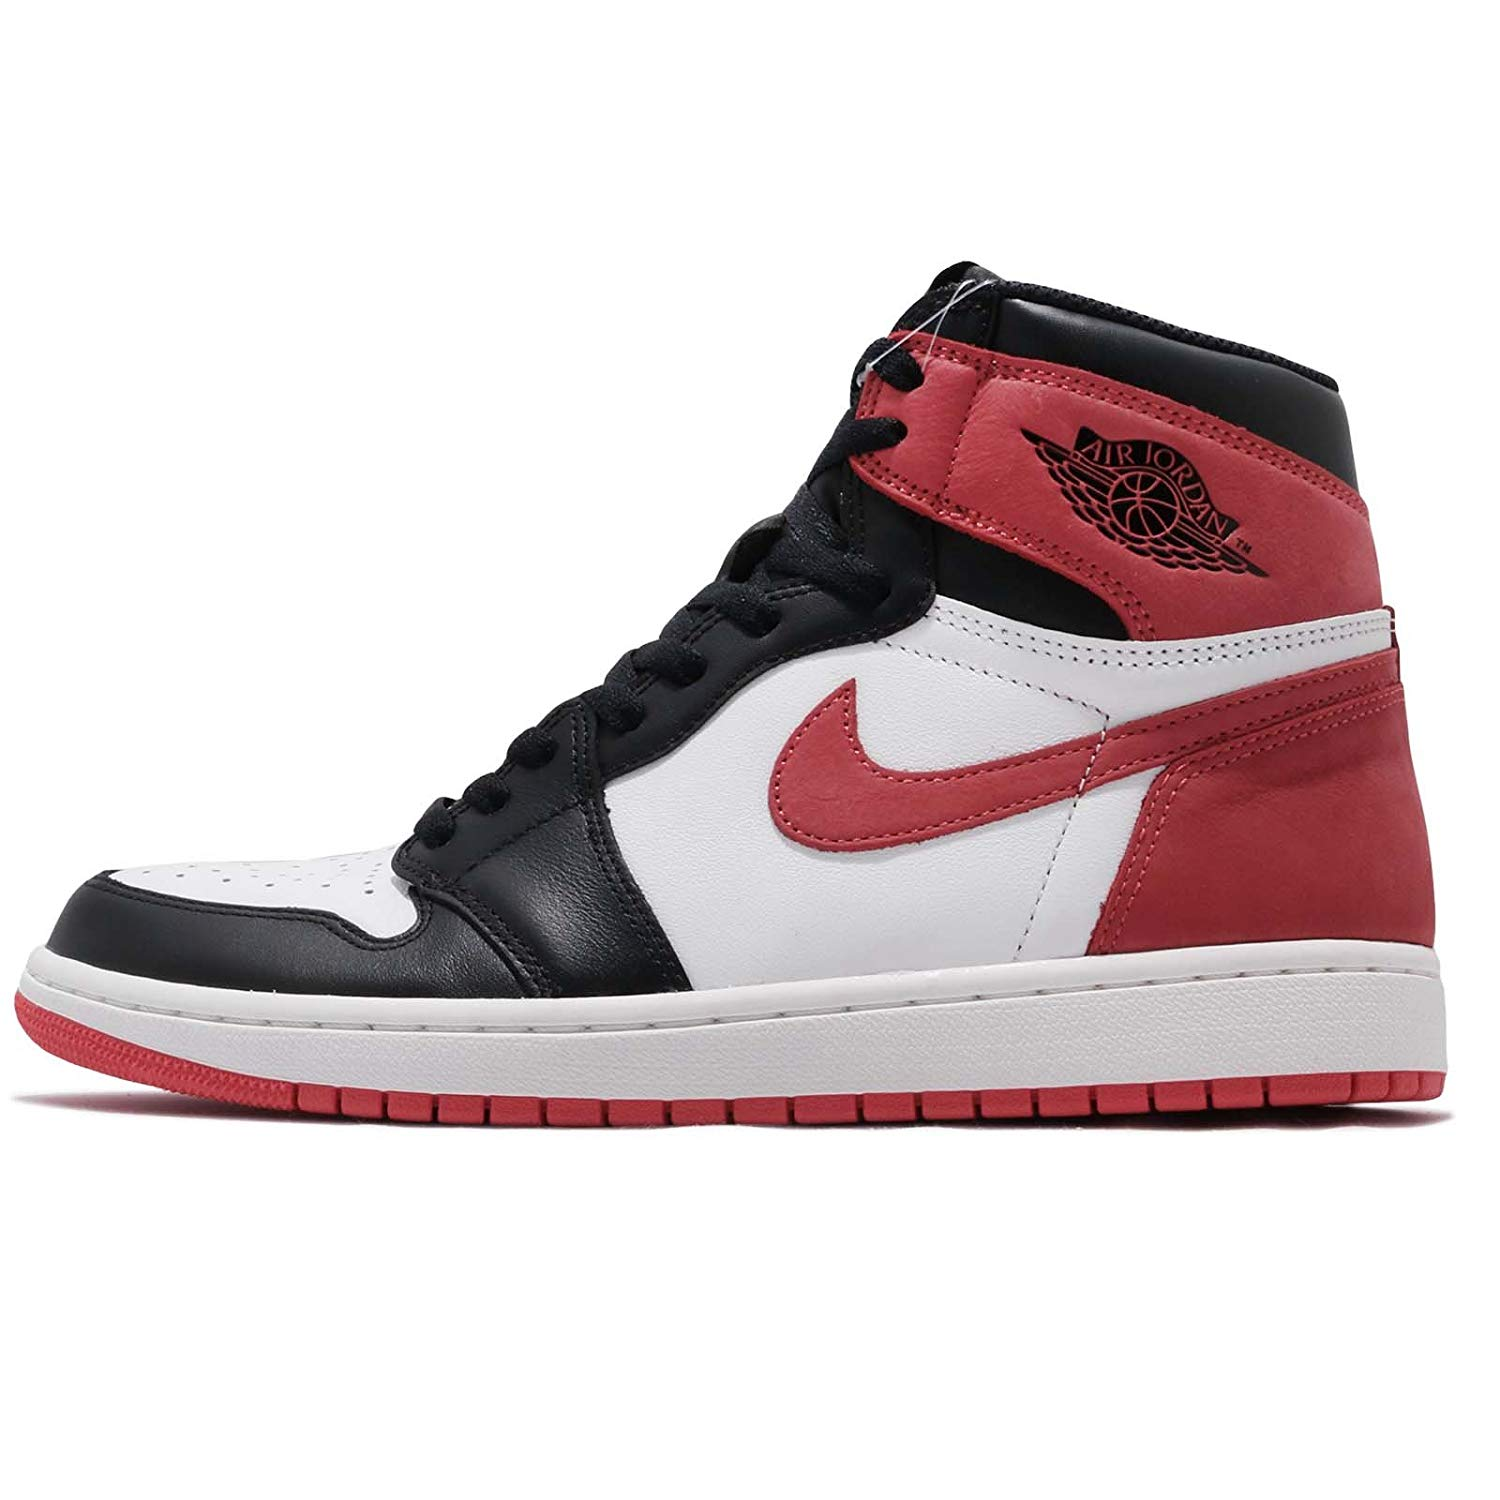 dcbe14a1d2f67 Cheap Og Retro 1, find Og Retro 1 deals on line at Alibaba.com